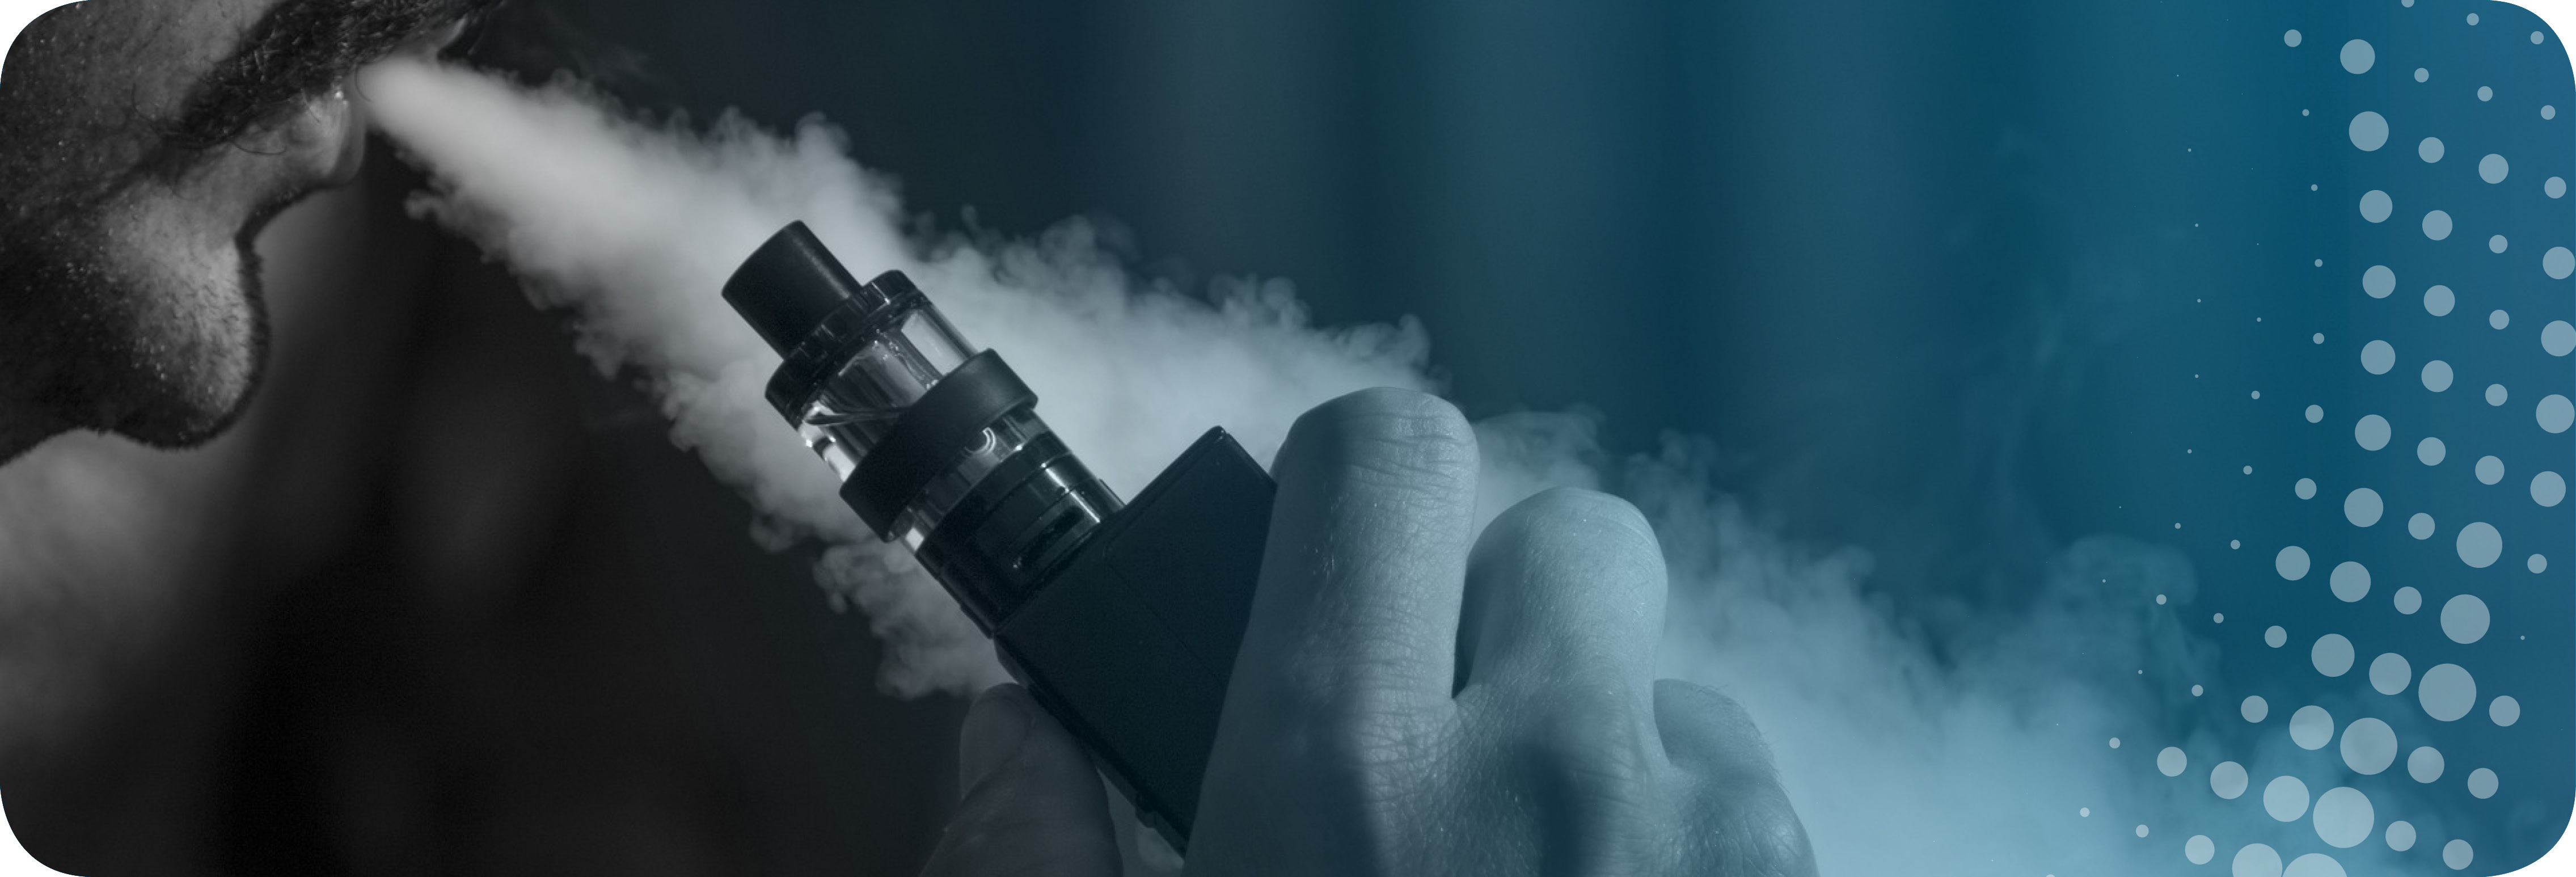 Vaping suspected for health consequences, needs regulation